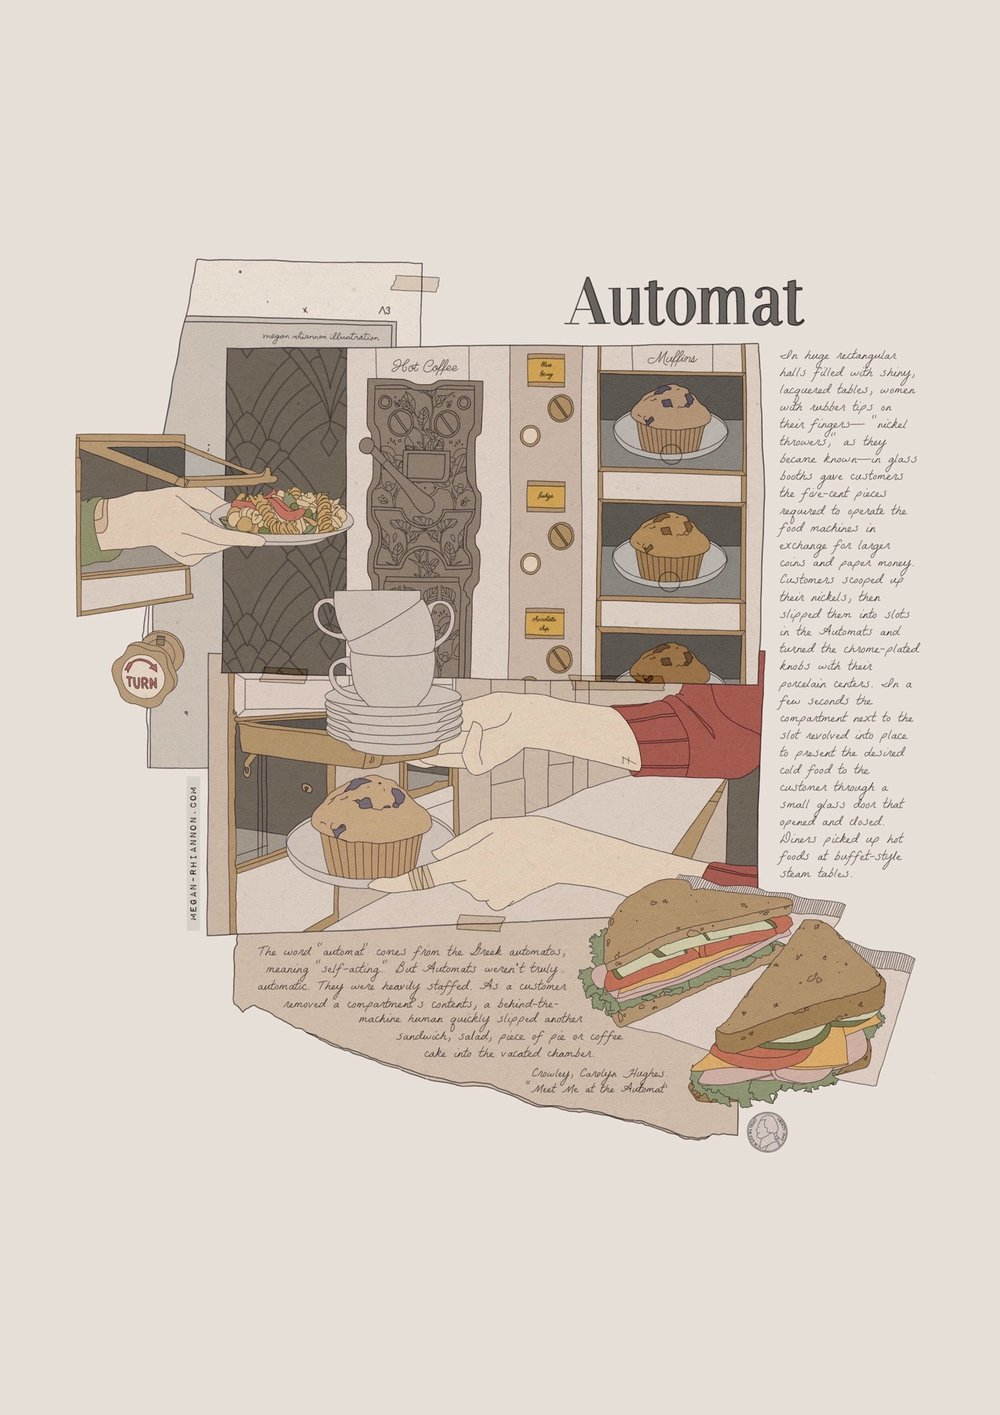 Automat - October 2018: Work created in response to research on old Automat restaurants.